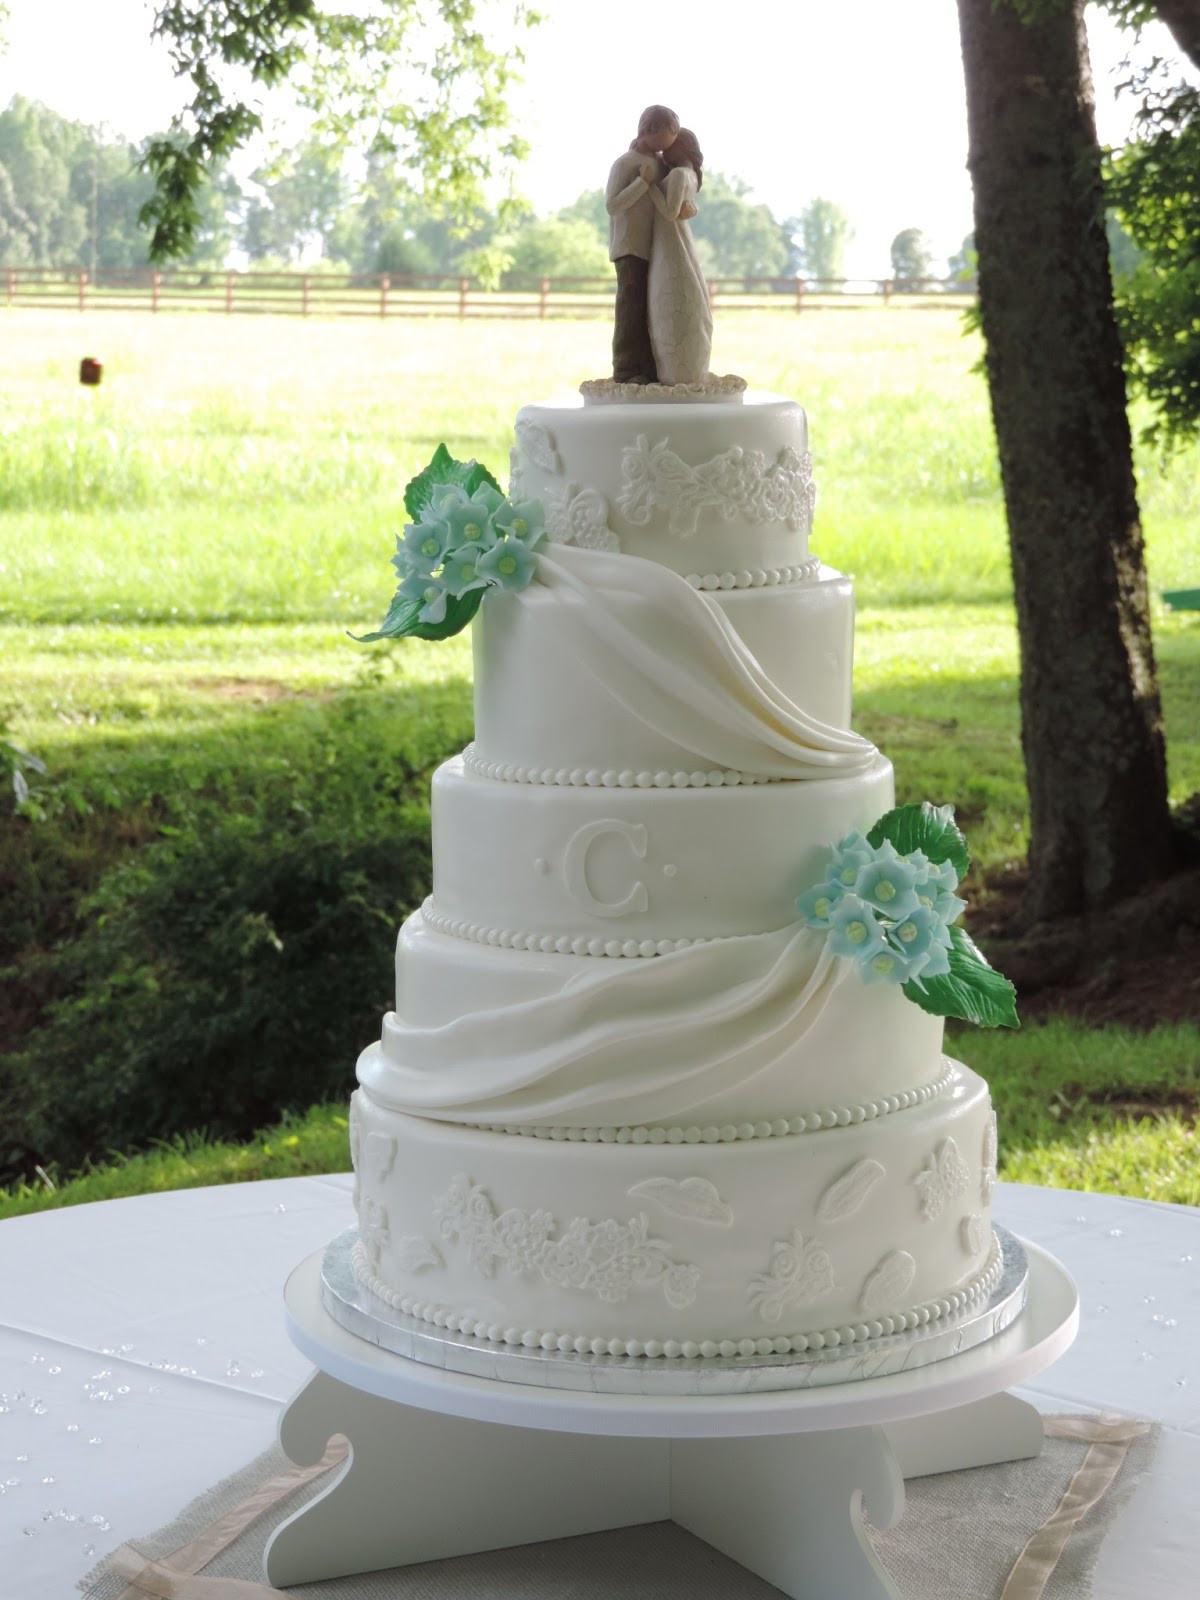 Elegant White Wedding Cakes  Cakes by Becky Elegant White Wedding Cake